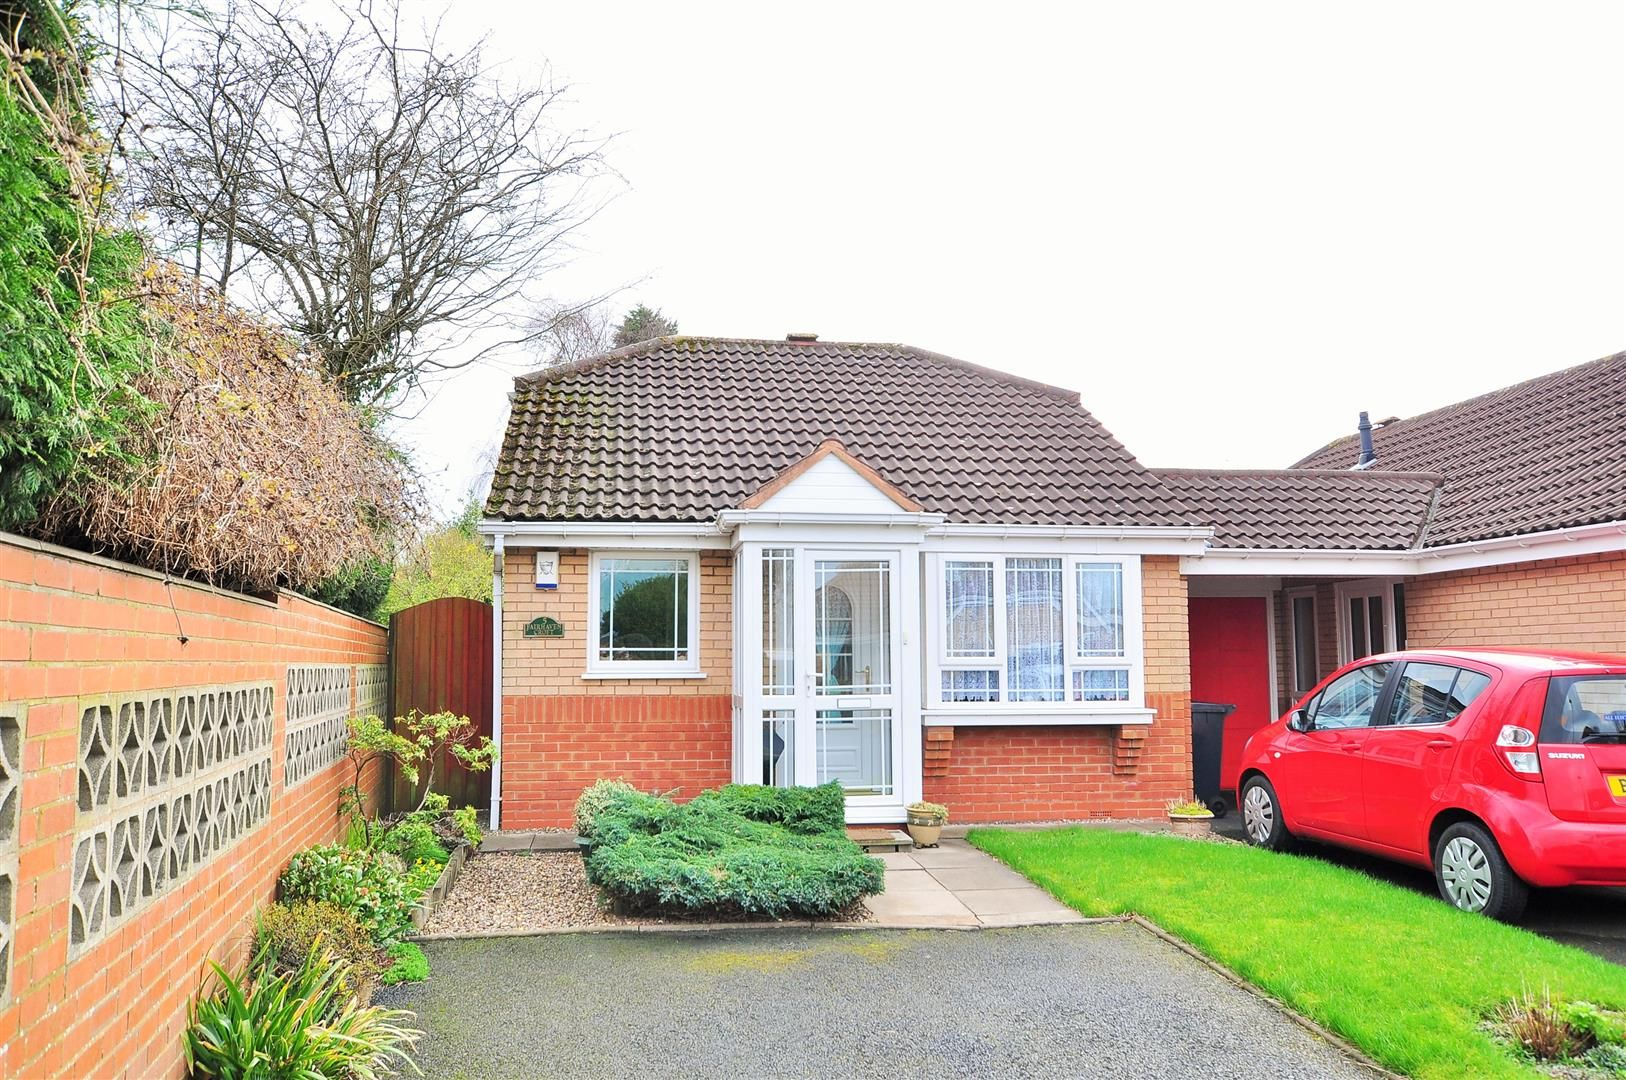 2 bed detached-bungalow for sale in Hurst Green  - Property Image 12